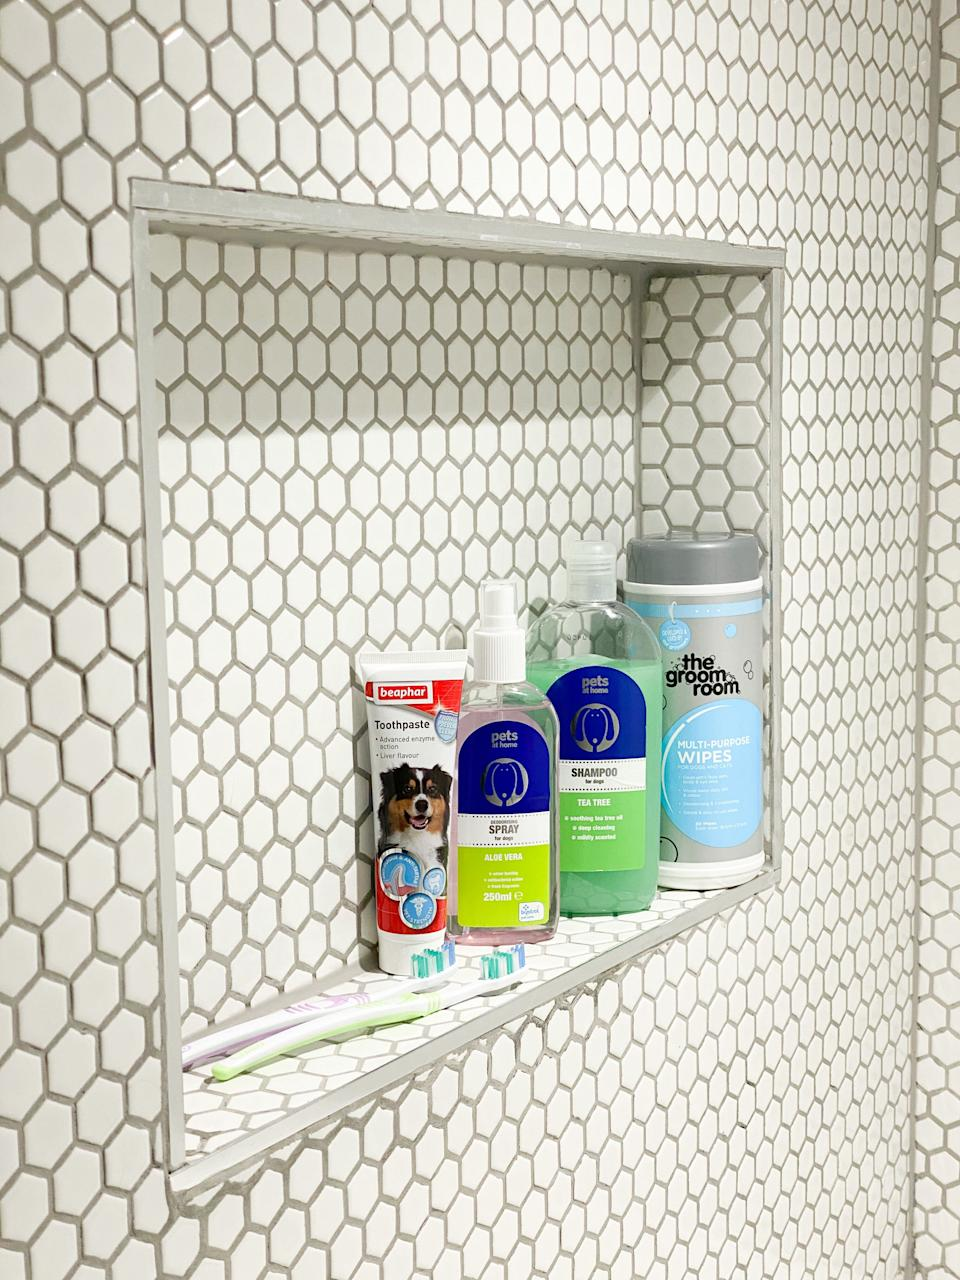 The impressive space has a recessed shelf for all their pooch pamper products. (@homestuffonly and Drench)